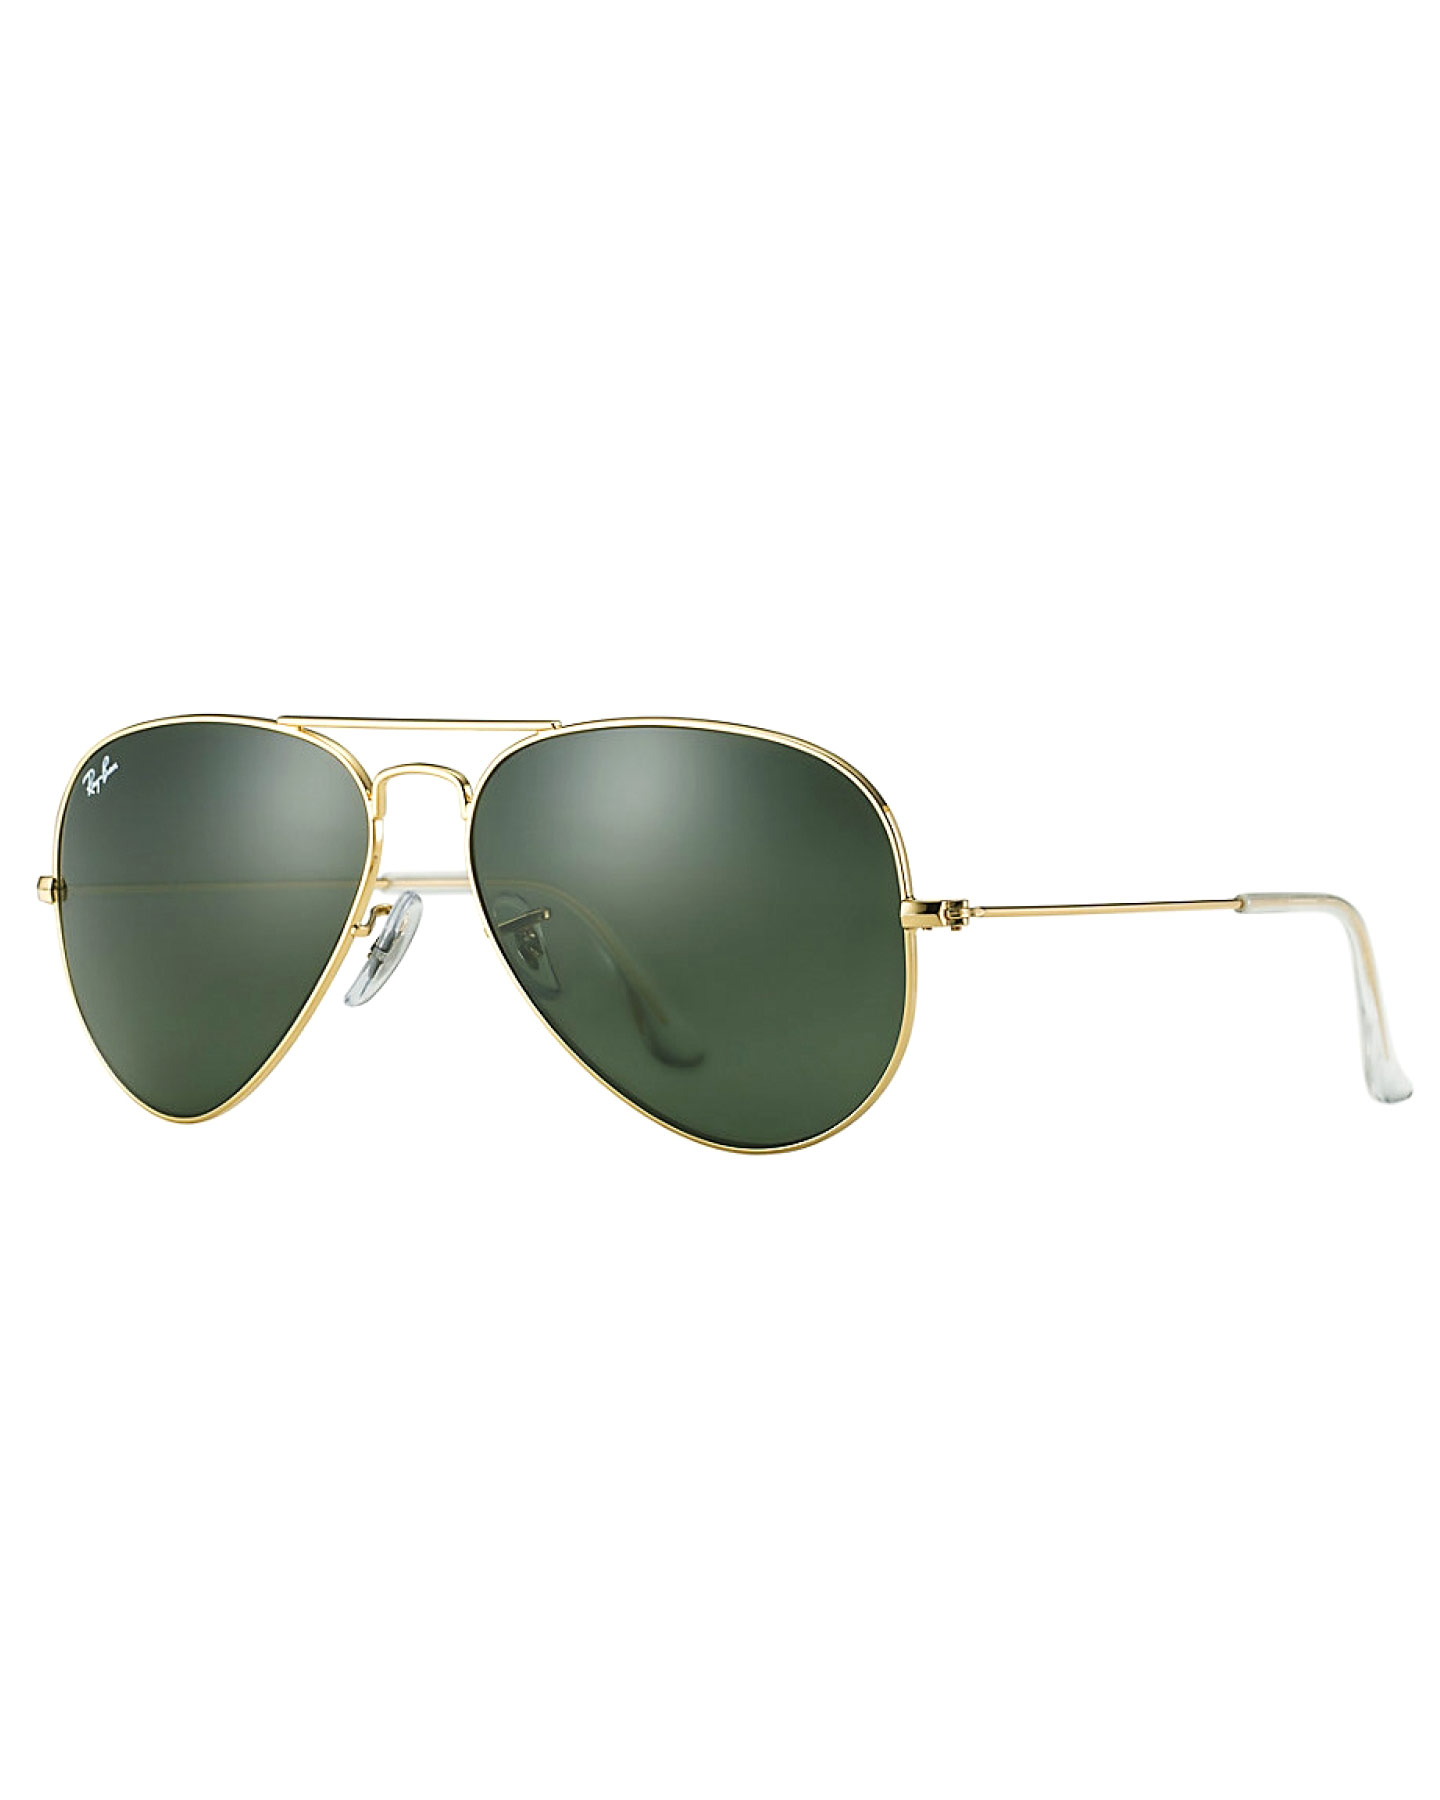 valentines-day-gifts-for-guys-rayban-aviator-classic-sunglasses-0215.jpg